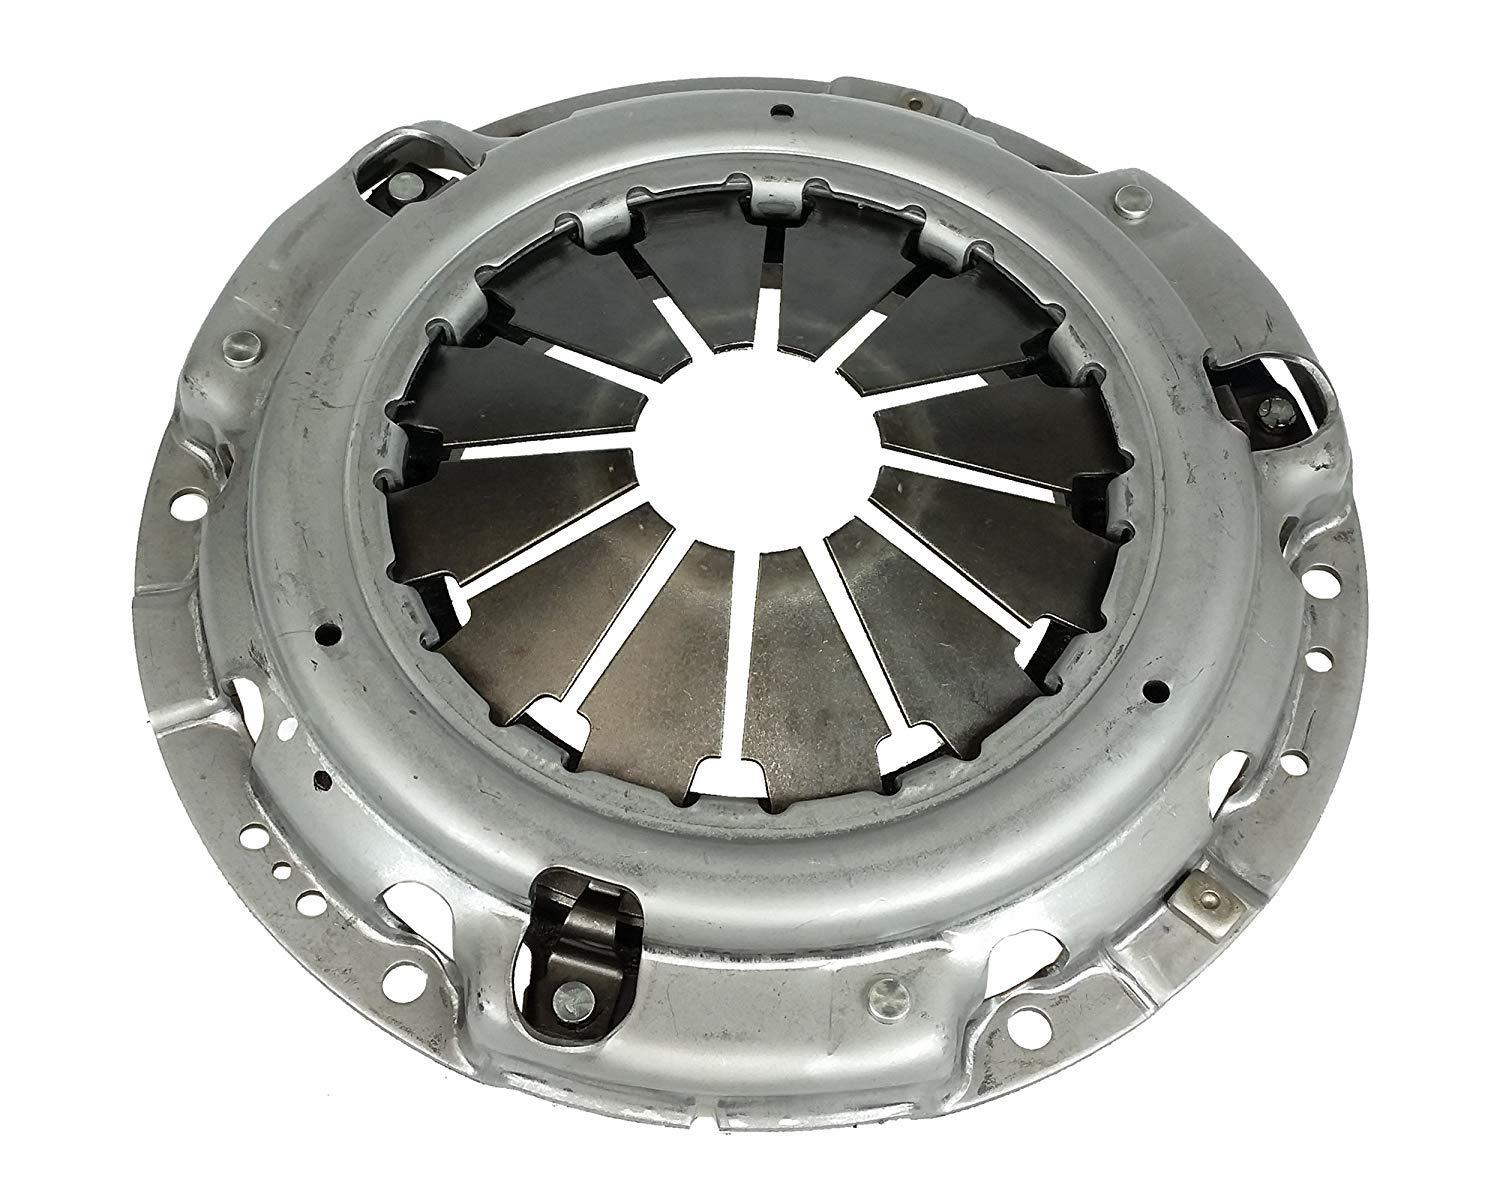 Clutch Kit works with Honda Element Cr-V Ex Lx Sc Dx Sport Utility 4-Door 2.4L l4 GAS DOHC Naturally Aspirated Flywheel Spec: .112+; Stage 1